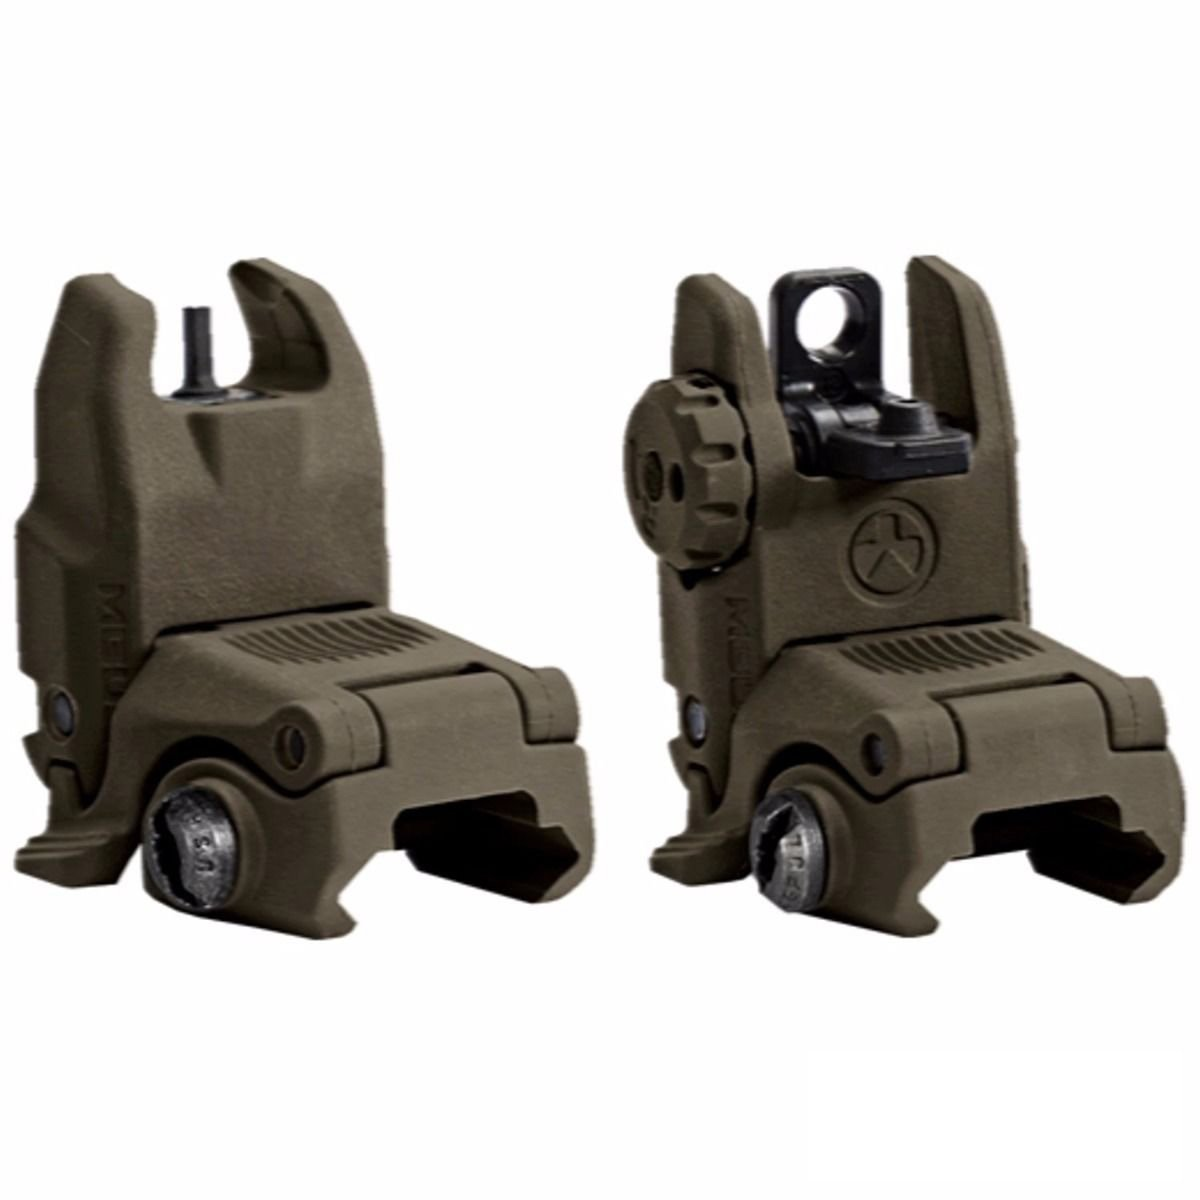 Magpul MBUS Front & Rear Flip Up Backup Sight GEN 2 - 247-248 - Olive Drab Green